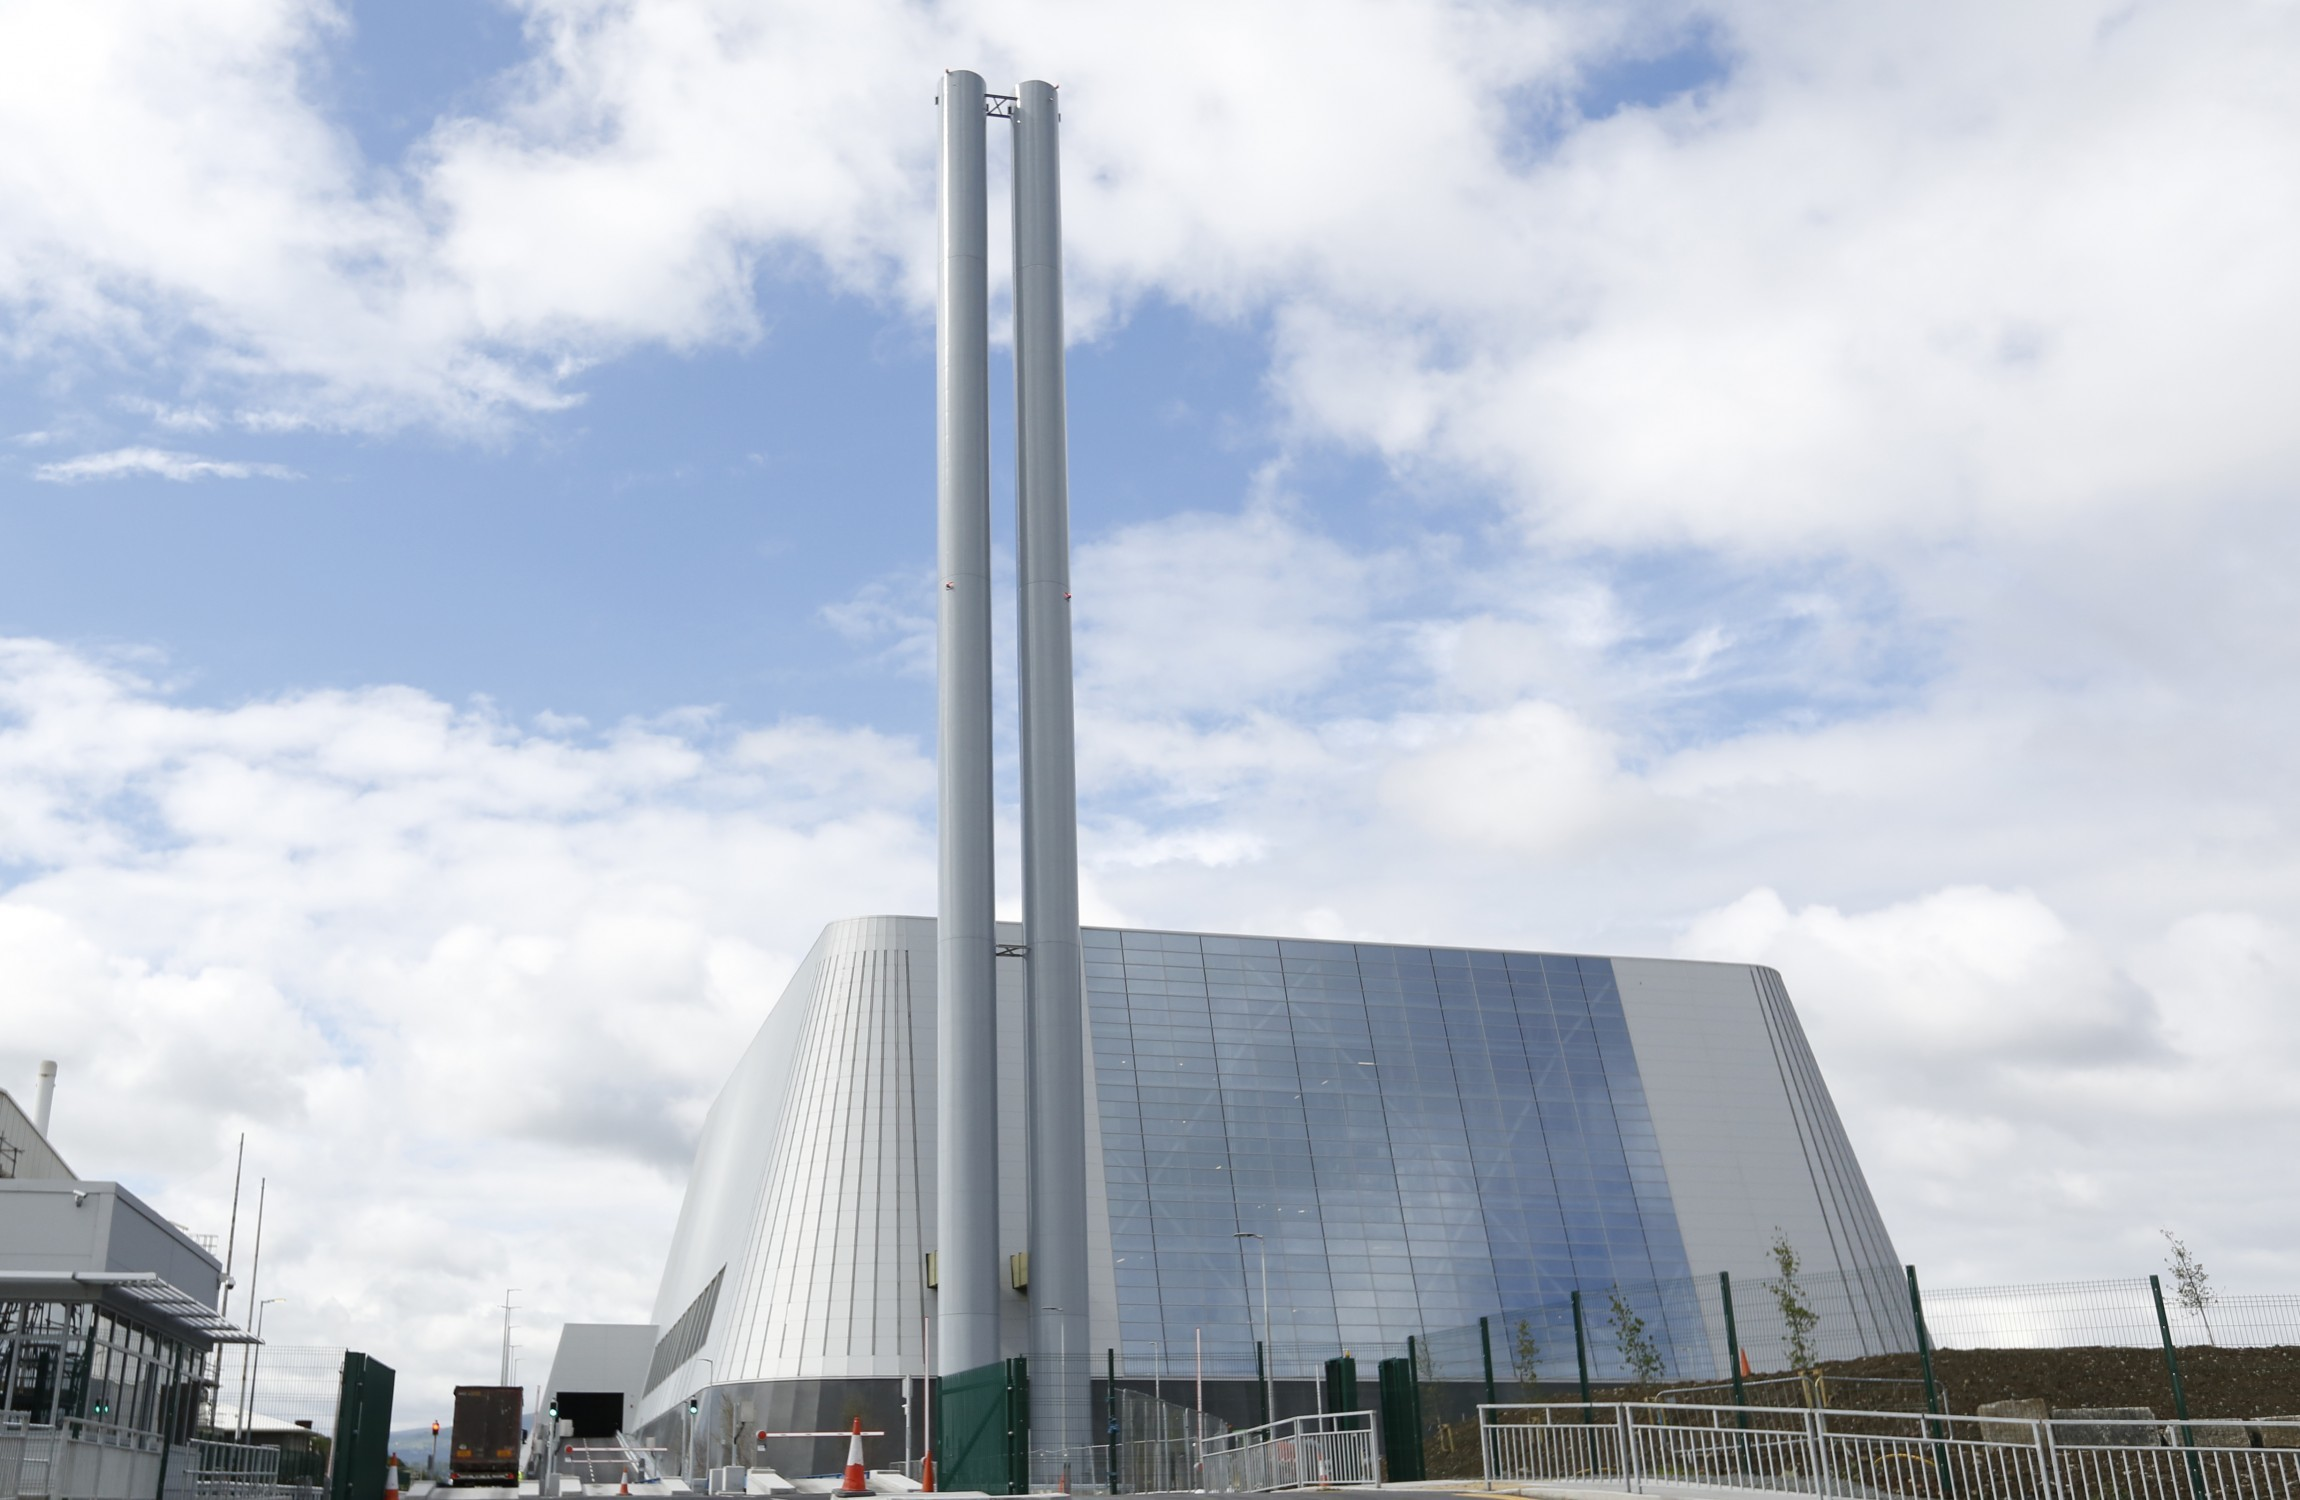 Eleven hospitalised after 'concerning' incident at Poolbeg Incinerator